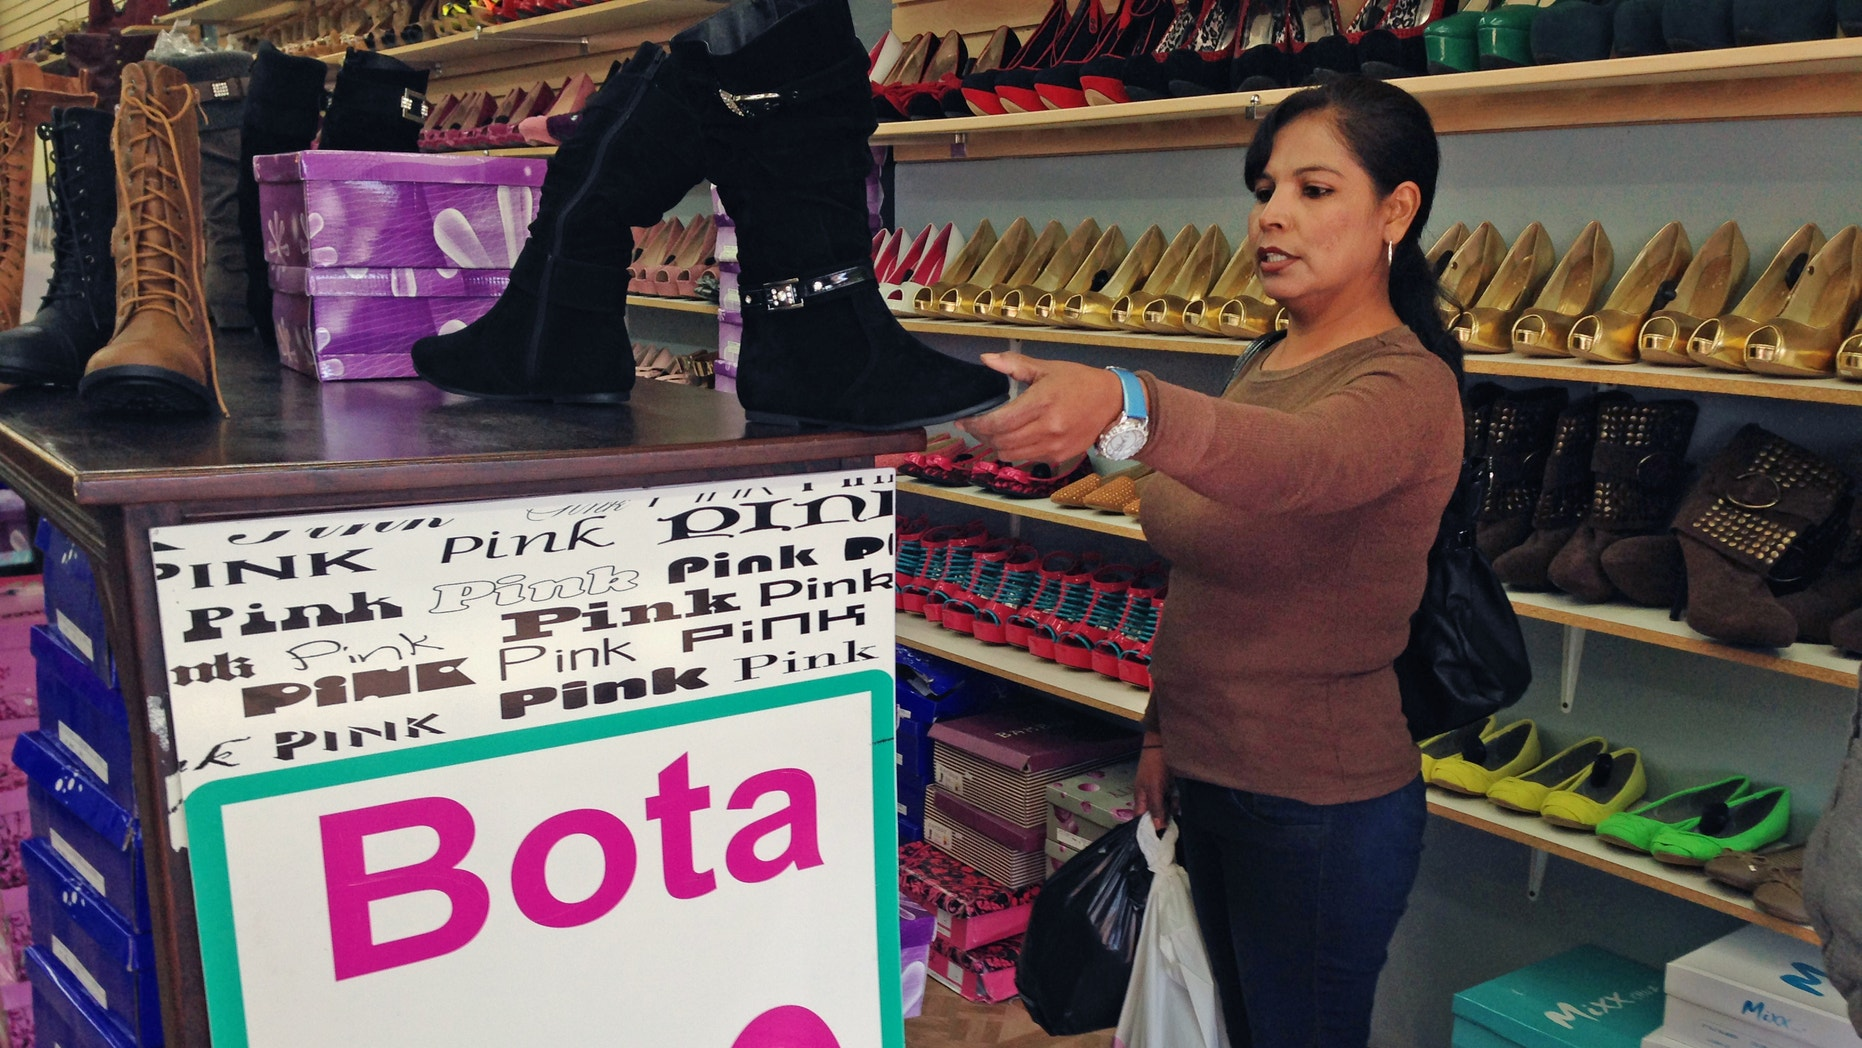 In this Dec. 19, 2014 photo, Martha Isabel Velasquez looks at a pair of boots while shopping in downtown Nogales, Ariz. Velasquez says she waited two hours in line to cross by foot over from Nogales, Sonora, Mexico, to go shopping. She said weak peso left her cash strapped and that she wouldnt be able to buy as much. Border communities drive the economy in border towns such as Nogales, but a recent drop in the value of the peso and long lines at ports of entry have caused a decrease in shoppers. (AP Photo/Astrid Galvan)